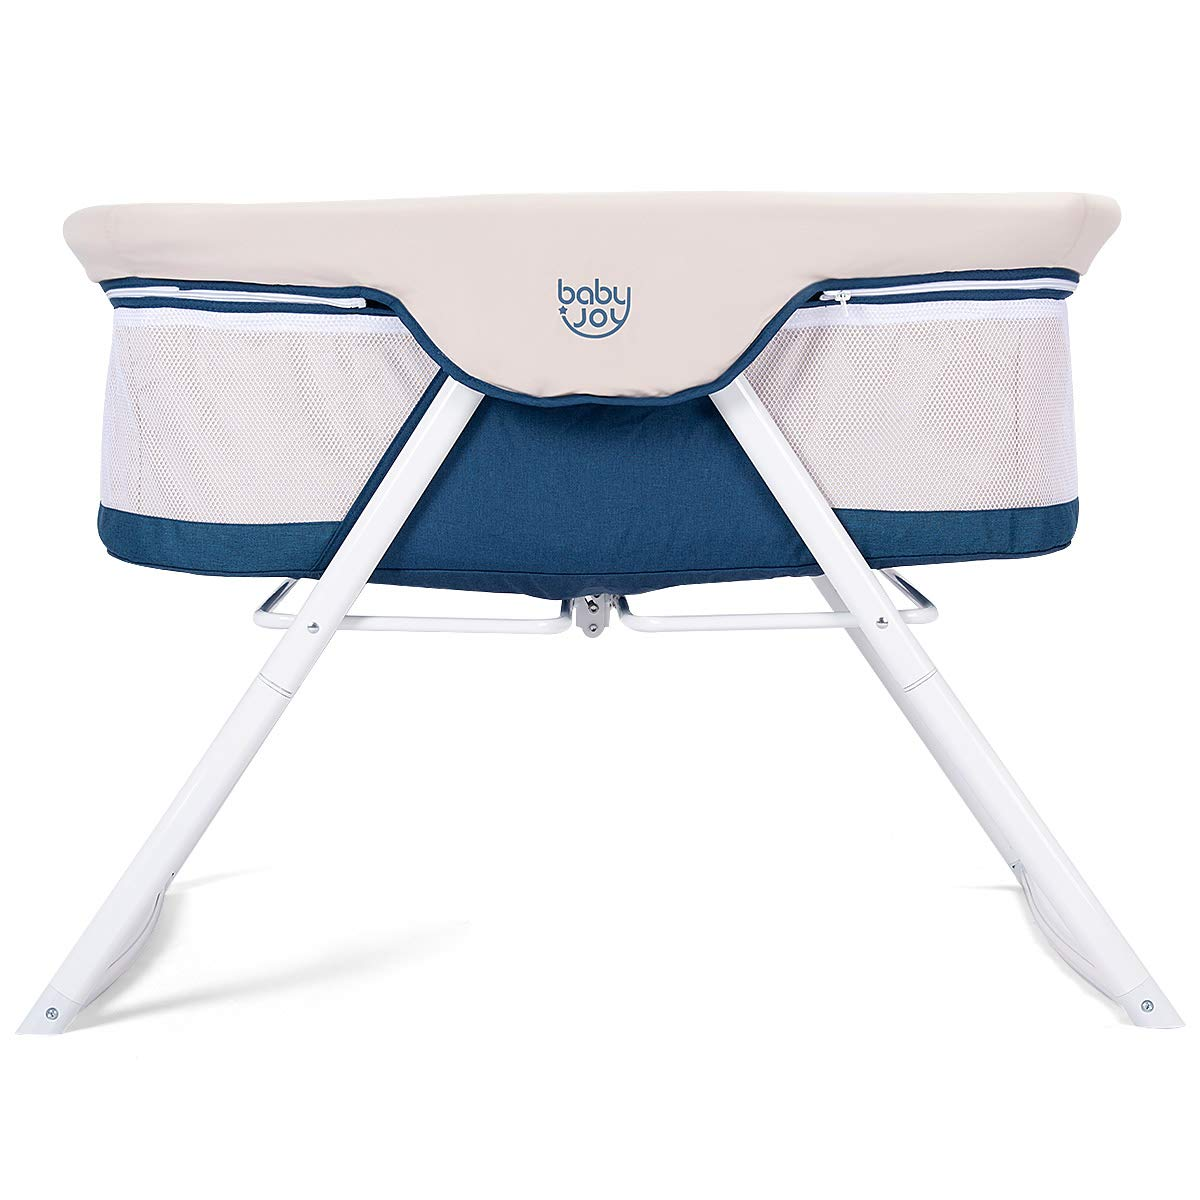 BABY JOY Rocking Bassinet, 2 in 1 Lightweight Travel Cradle w/Detachable & Washable Mattress, Zippered Breathable Mesh Side, Oxford Carry Bag Included, Portable Crib for Newborn Baby (Beige + Blue)